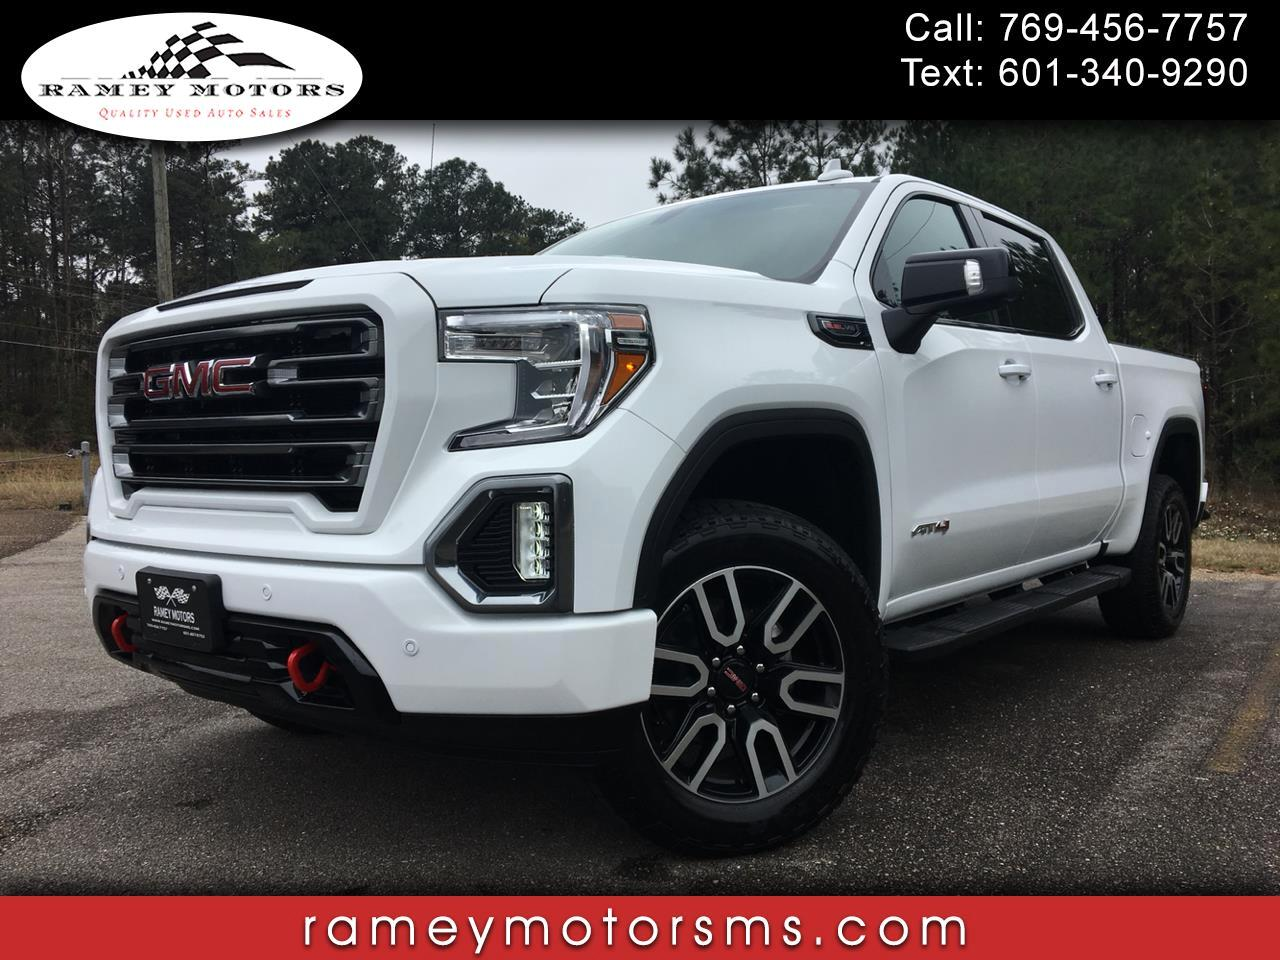 2019 GMC Sierra 1500 4WD CREWCAB AT4 EDITION